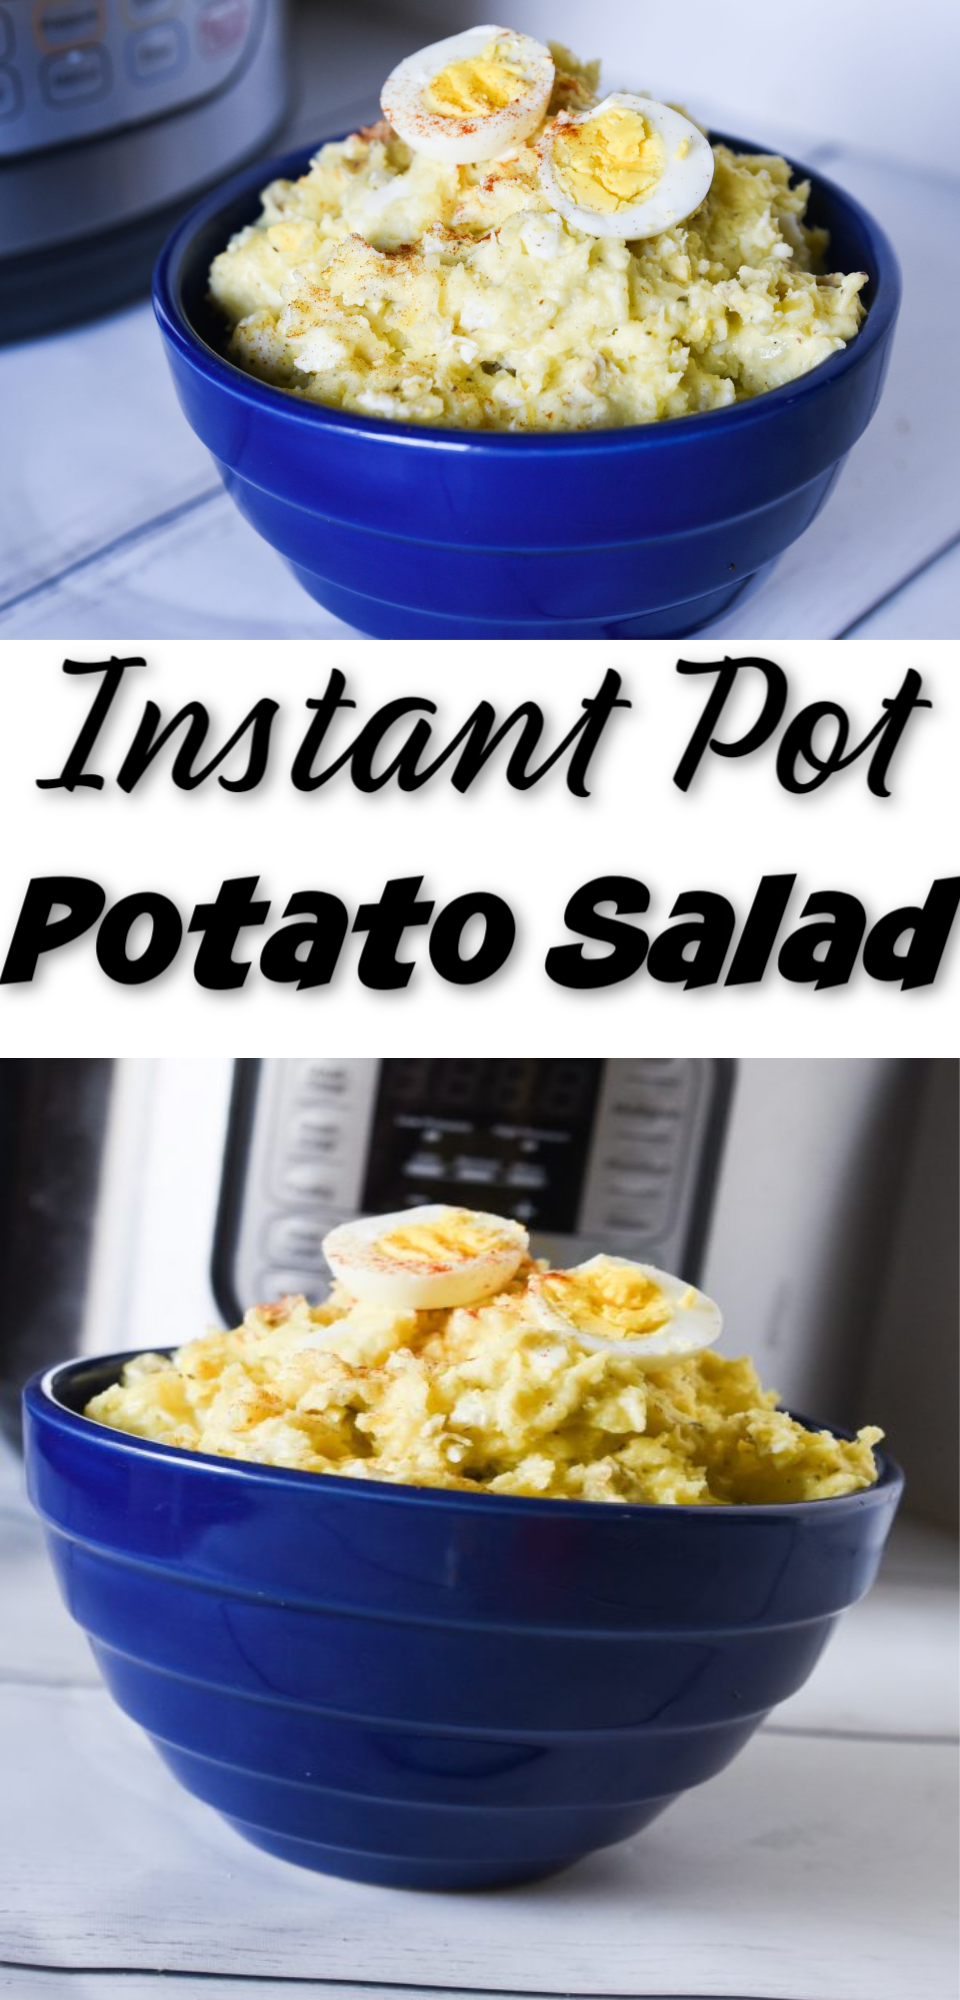 Instant Pot Potato Salad is the EASIEST way to make a potato salad recipe - it is so so delicious, too. This includes a mustard dressing recipe, but the technique can be used for anything! via @simplysidedishes89